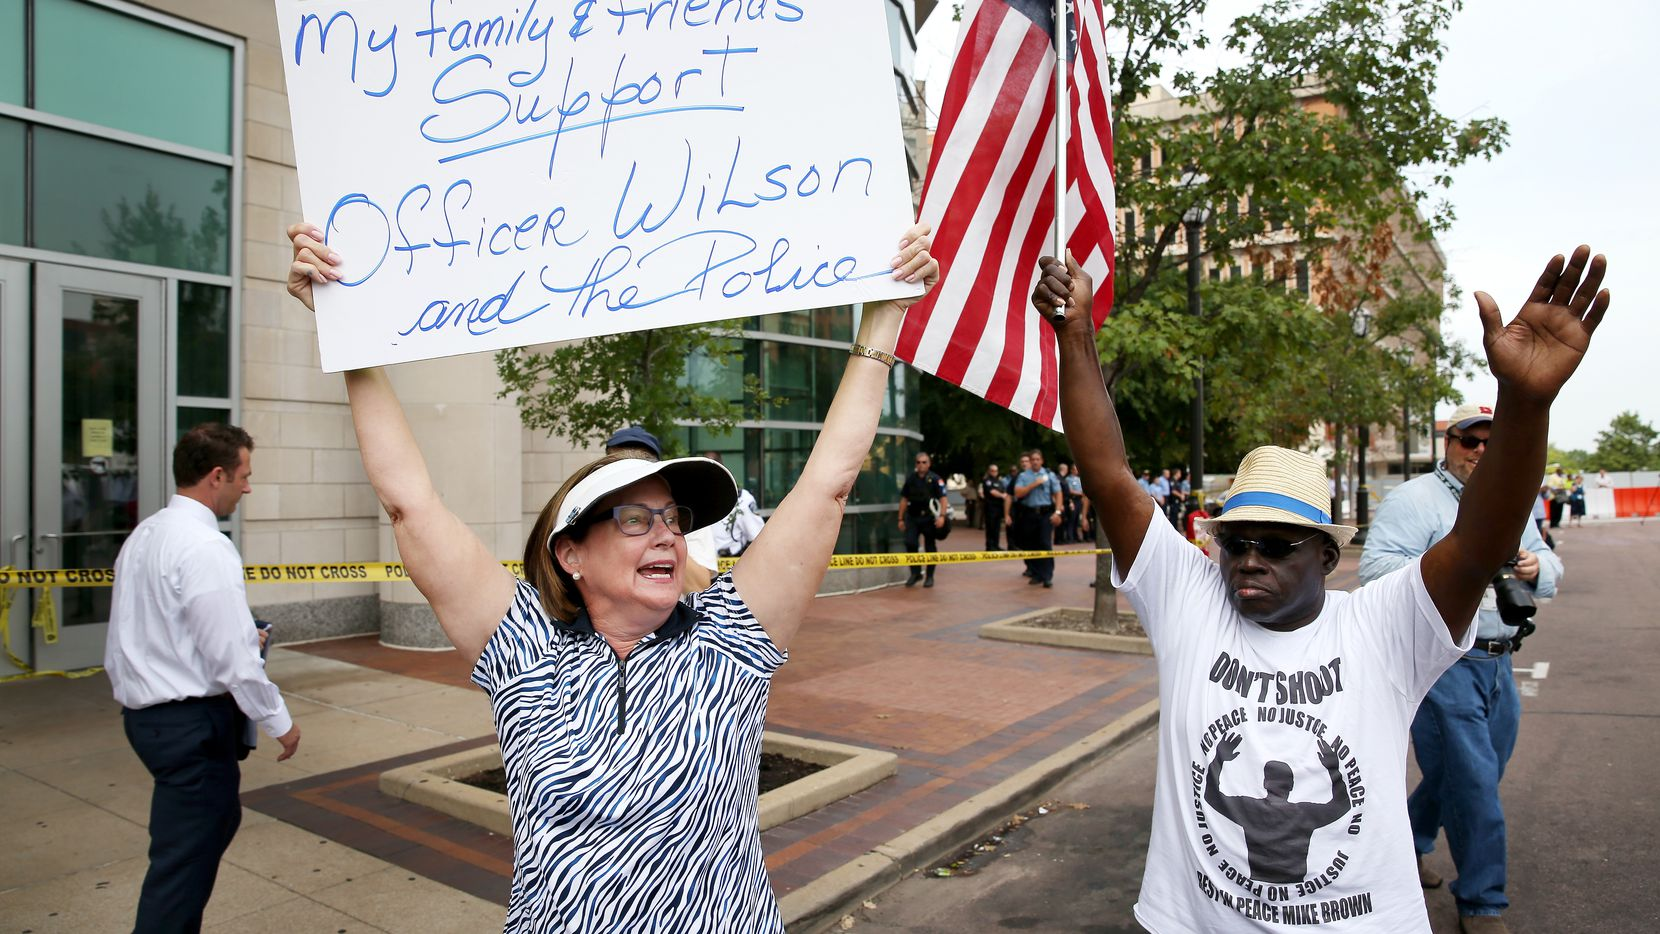 "CLAYTON, MO - AUGUST 20:  Patty Canter (L) holds a sign reading, "" My Family & Friends Support Officer Wilson and the Police"", as she walks next to Chris Finch who joined others in front of the Buzz Westfall Justice Center asking for justice for the Michael Brown family including the arrest of Darren Wilson the officer who shot him on August 20, 2014 in Clayton, Missouri. A grand jury will begin looking at the circumstances surrounding the fatal police shooting of an unarmed teenager Michael Brown who was shot and killed by a Ferguson, Missouri police officer on August 9. Despite the Brown family's continued call for peaceful demonstrations, violent protests have erupted nearly every night in Ferguson since his death. (Photo by Joe Raedle/Getty Images)"